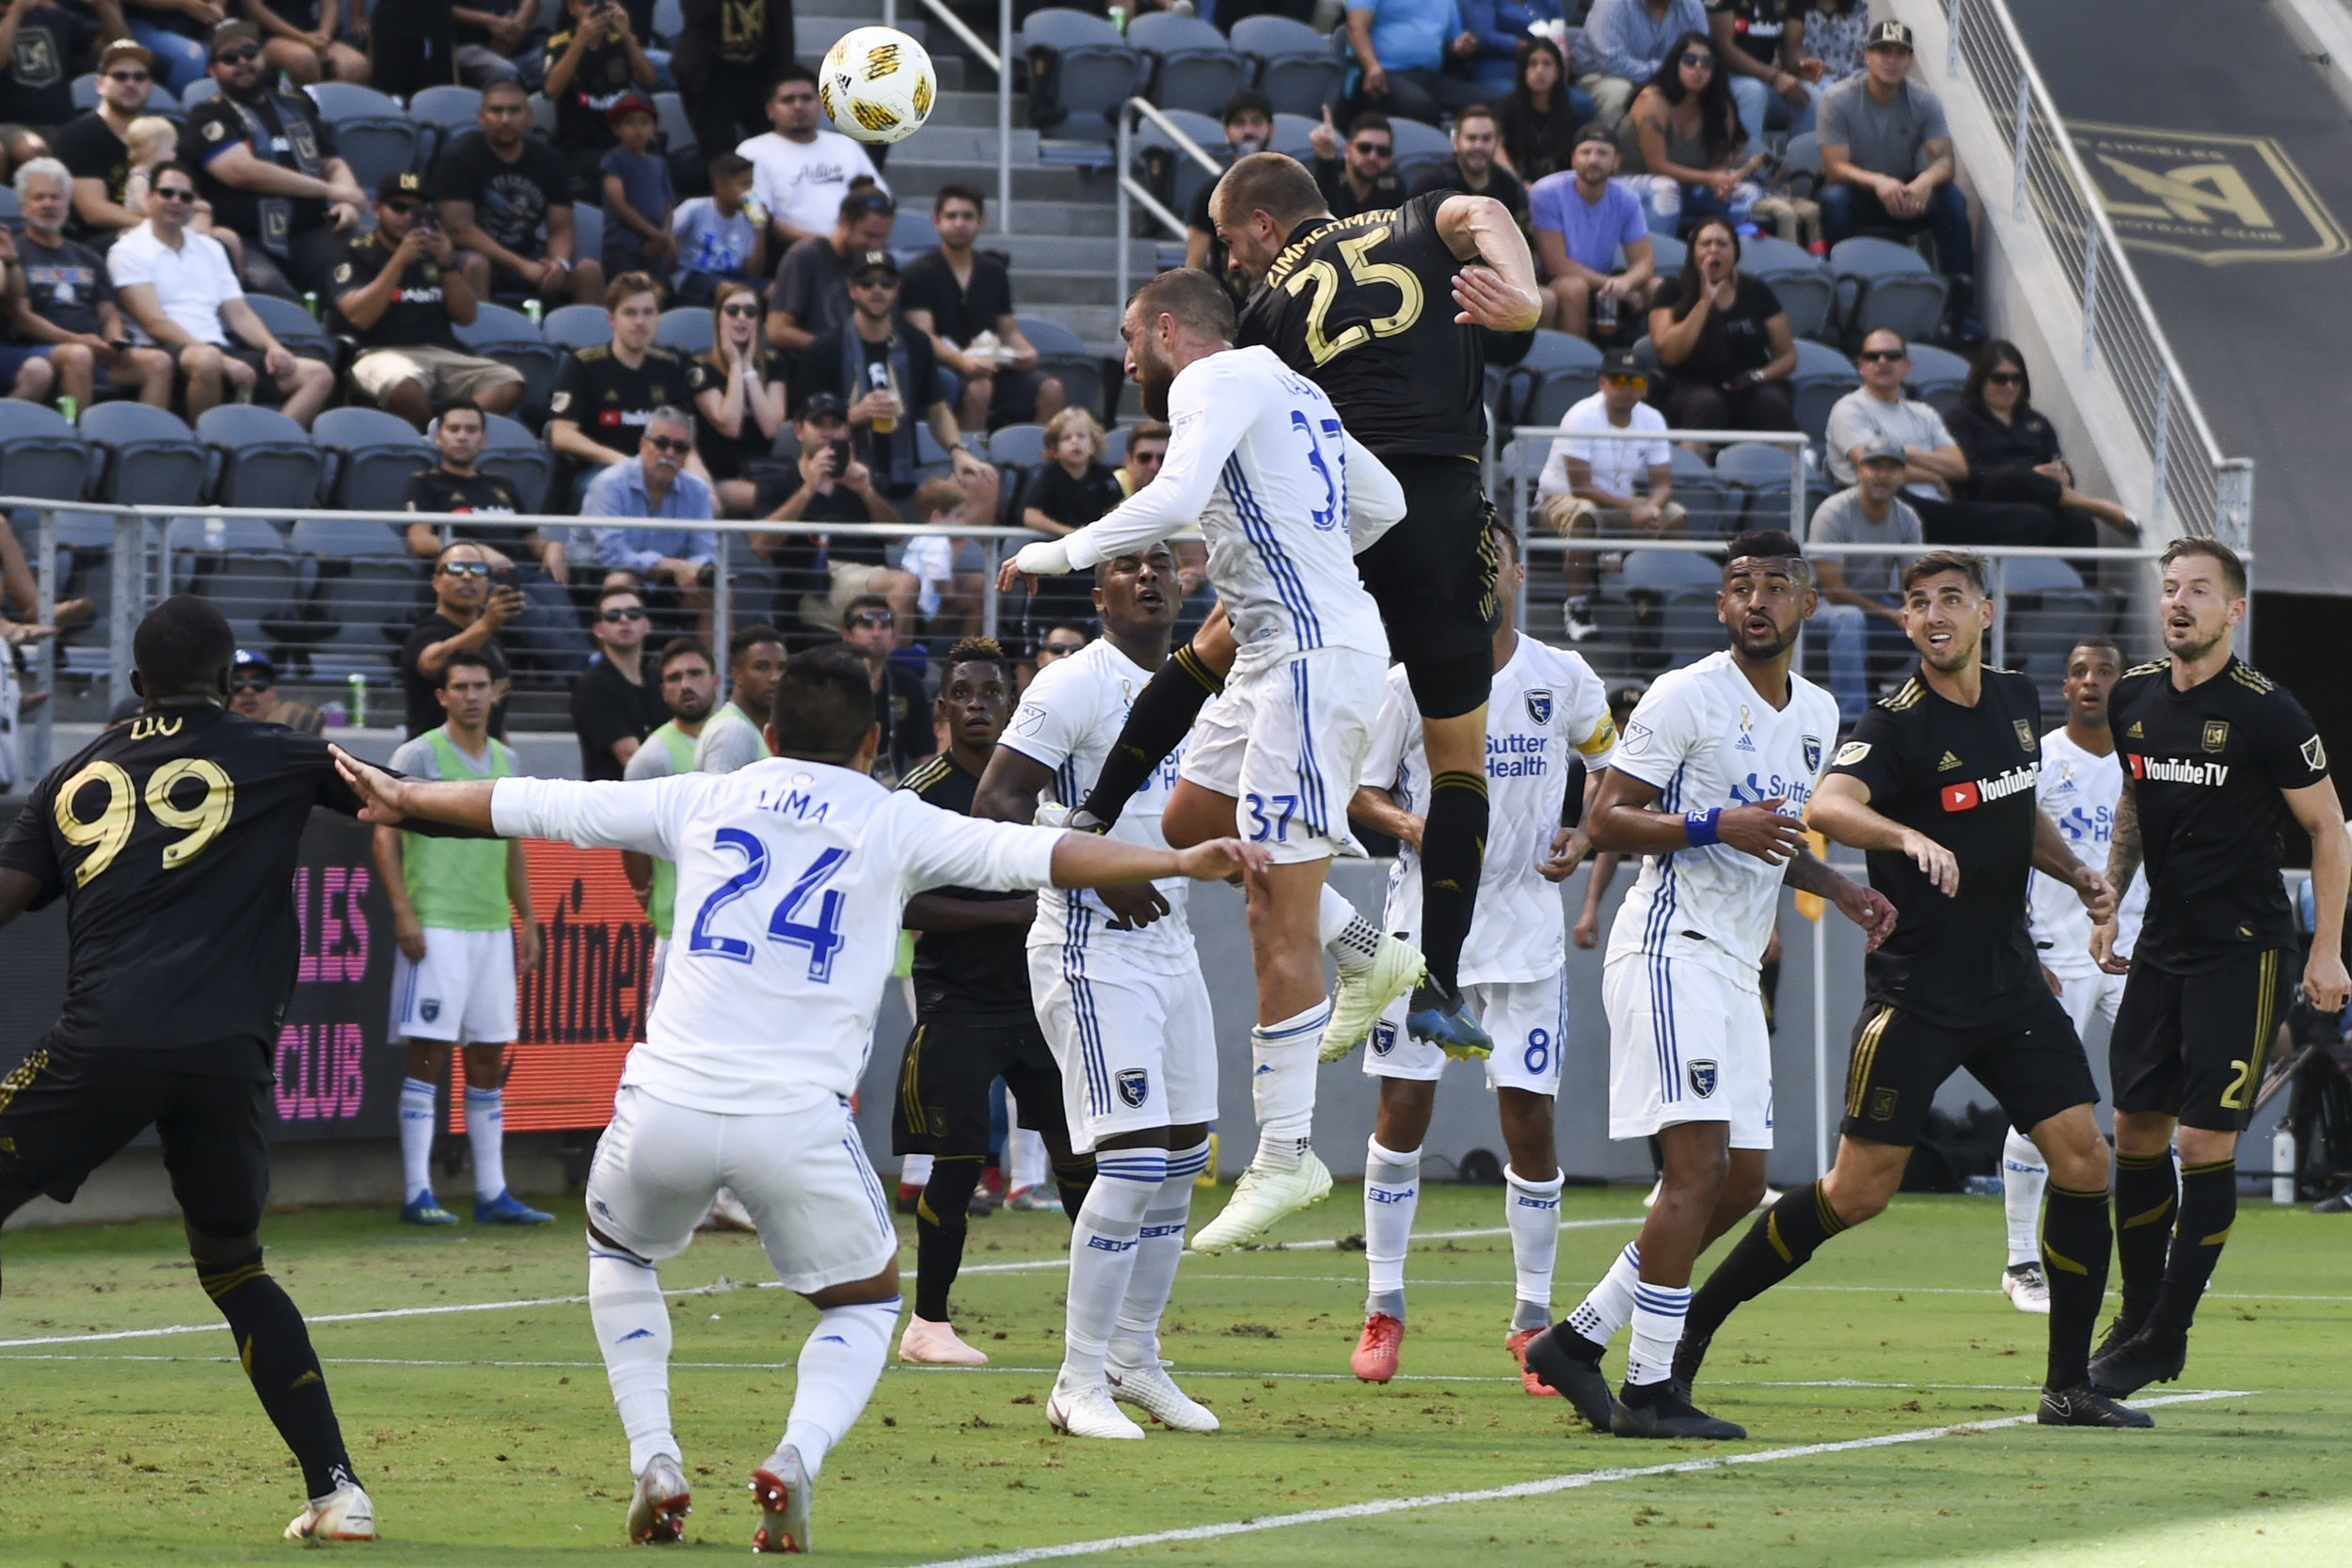 Photo by : LAFC